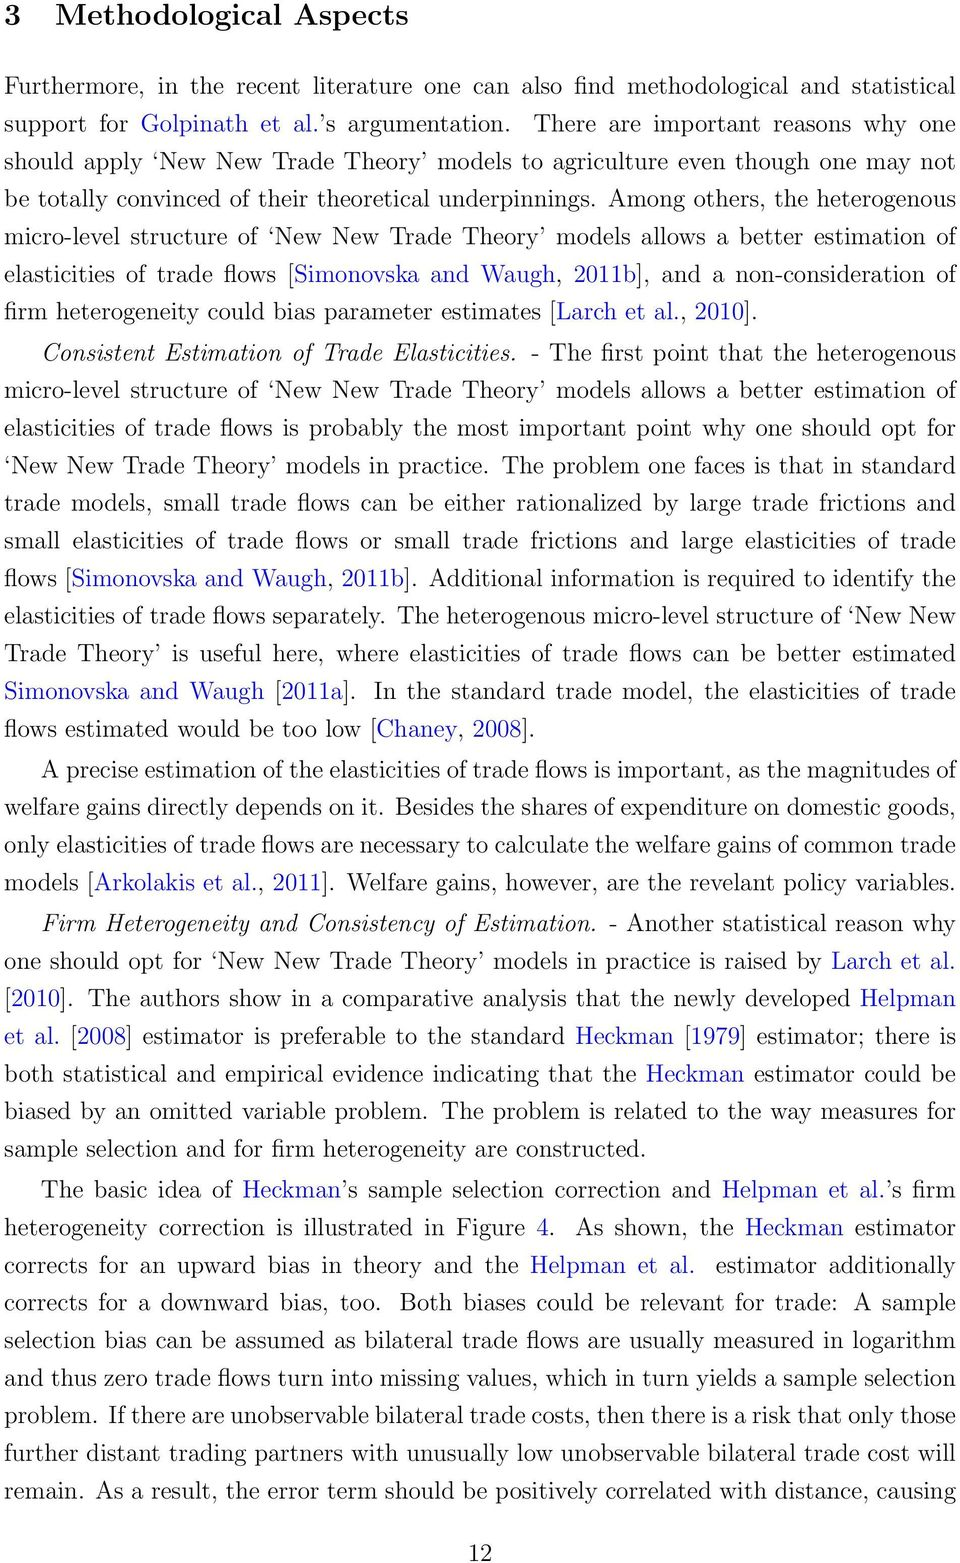 Among others, the heterogenous micro-level structure of New New Trade Theory models allows a better estimation of elasticities of trade flows [Simonovska and Waugh, 2011b], and a non-consideration of